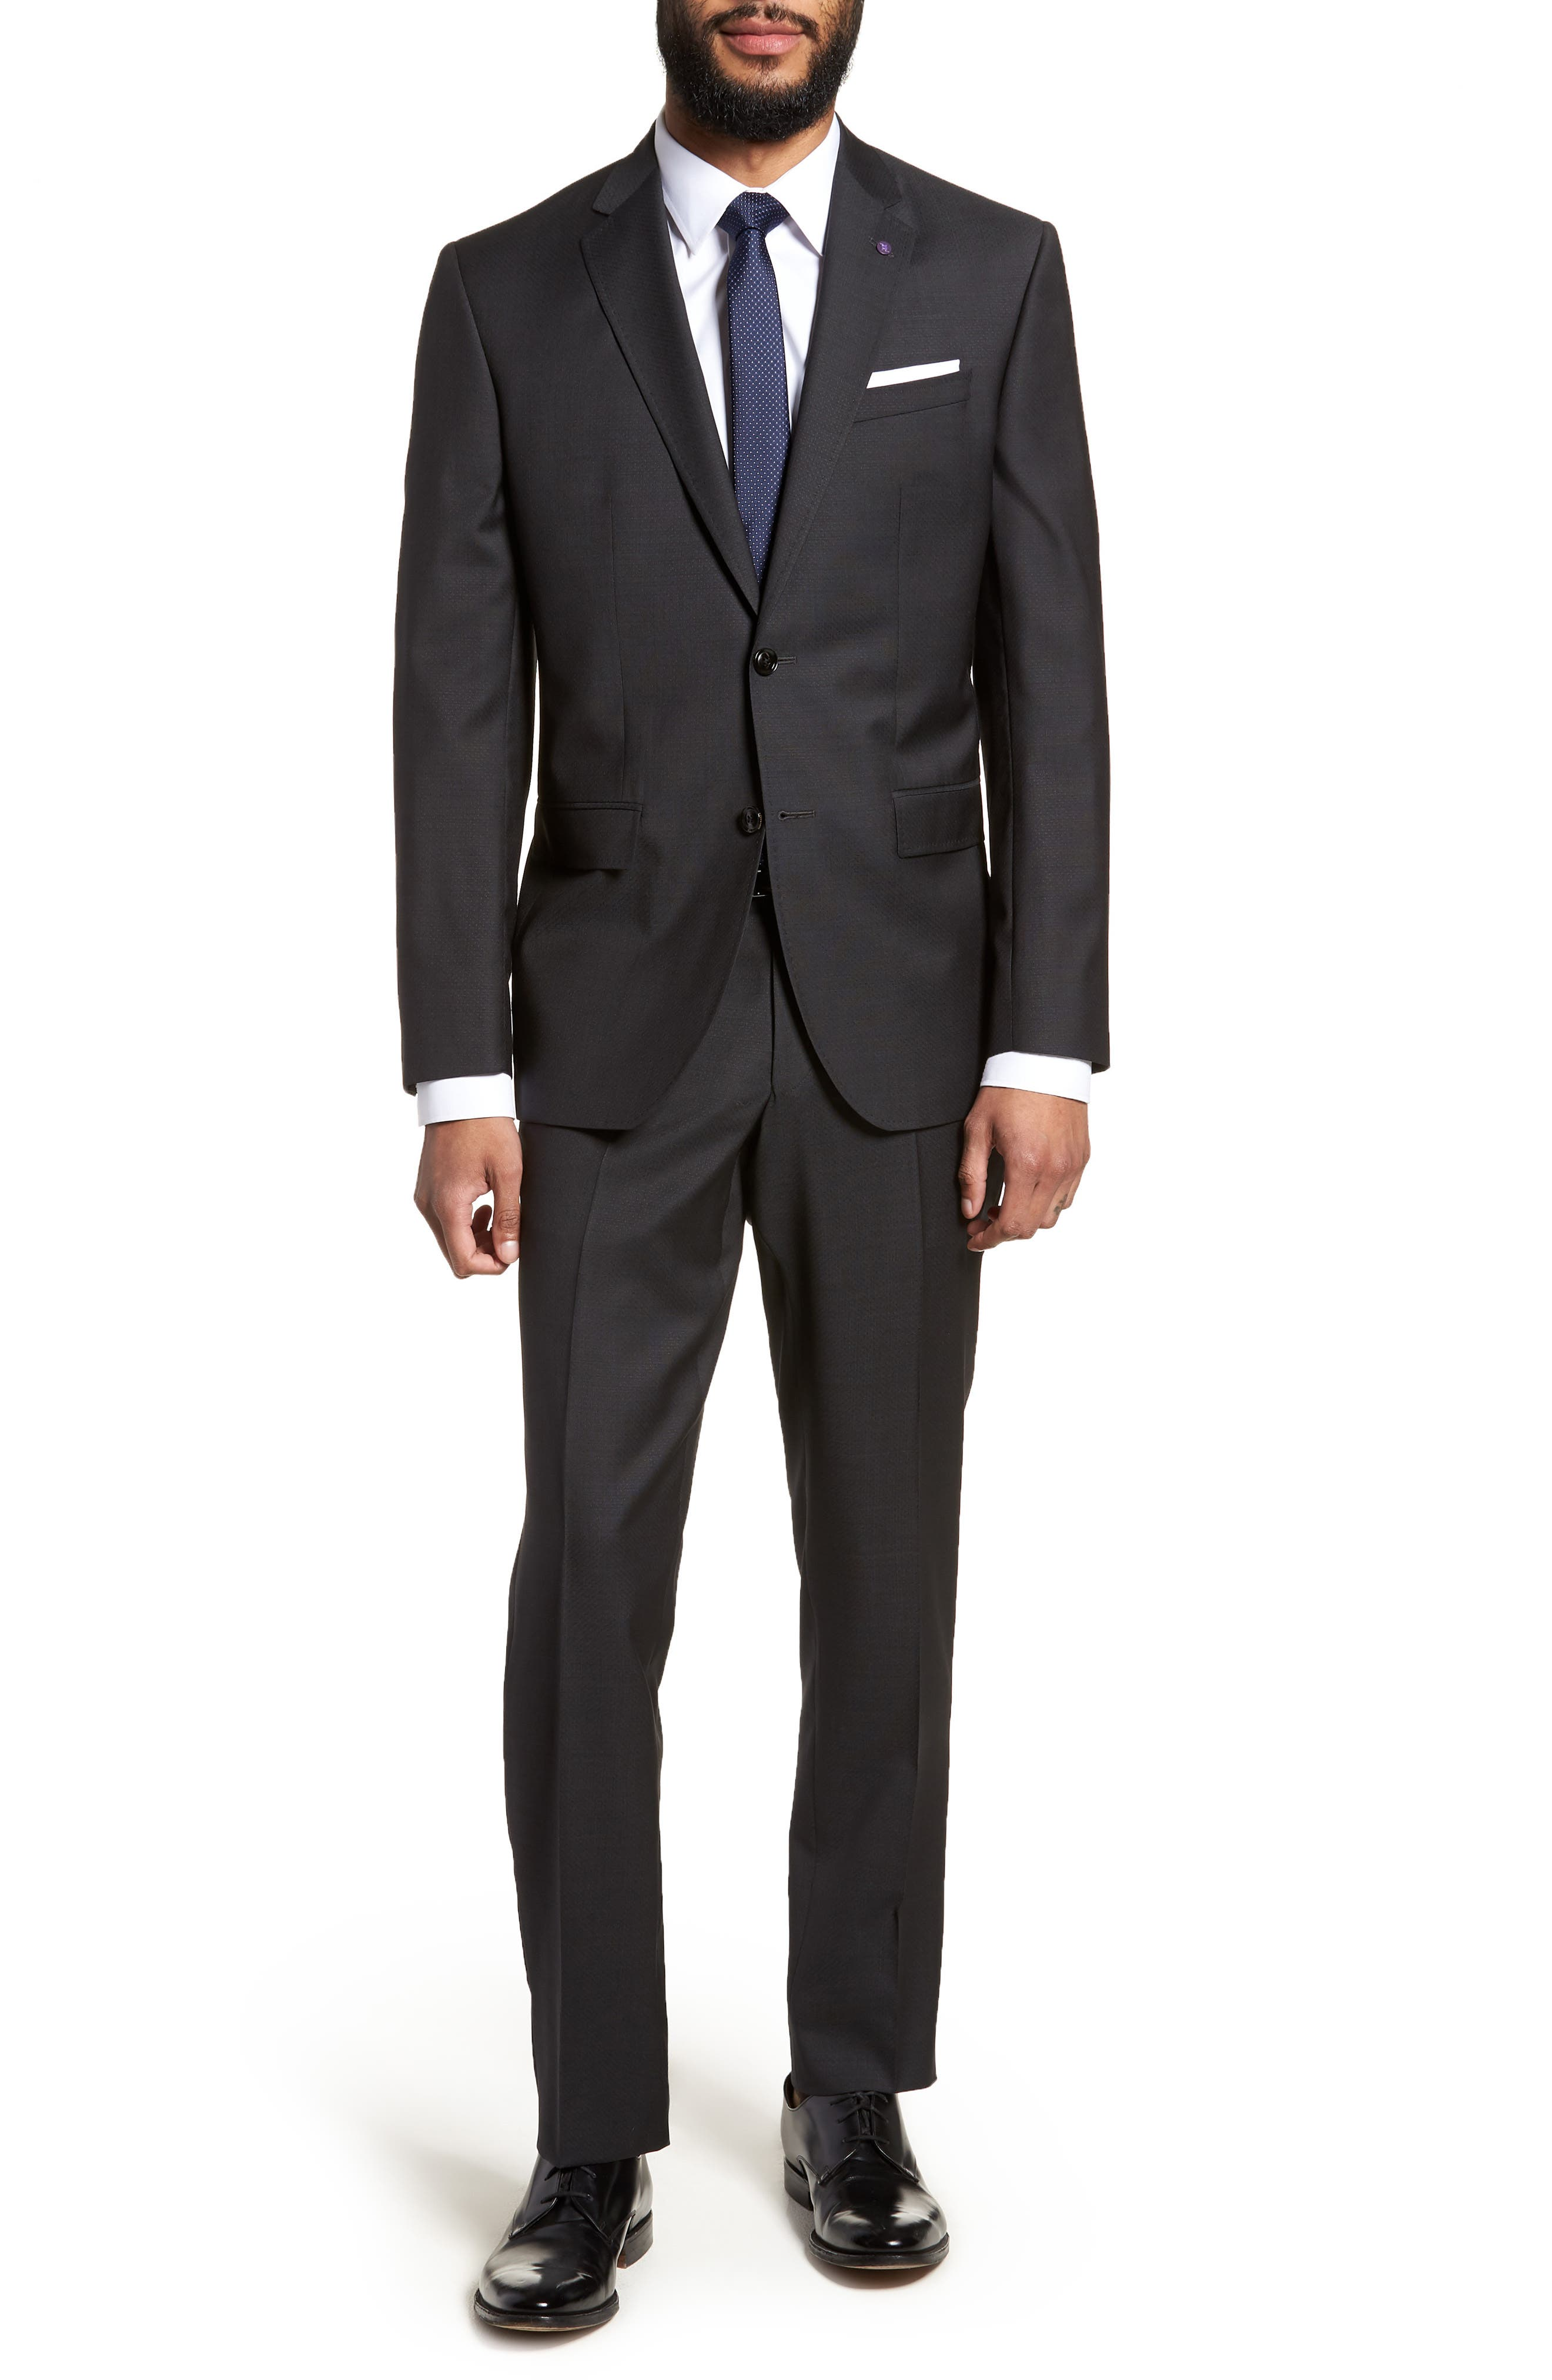 Jay Trim Fit Solid Wool Suit,                             Main thumbnail 1, color,                             001